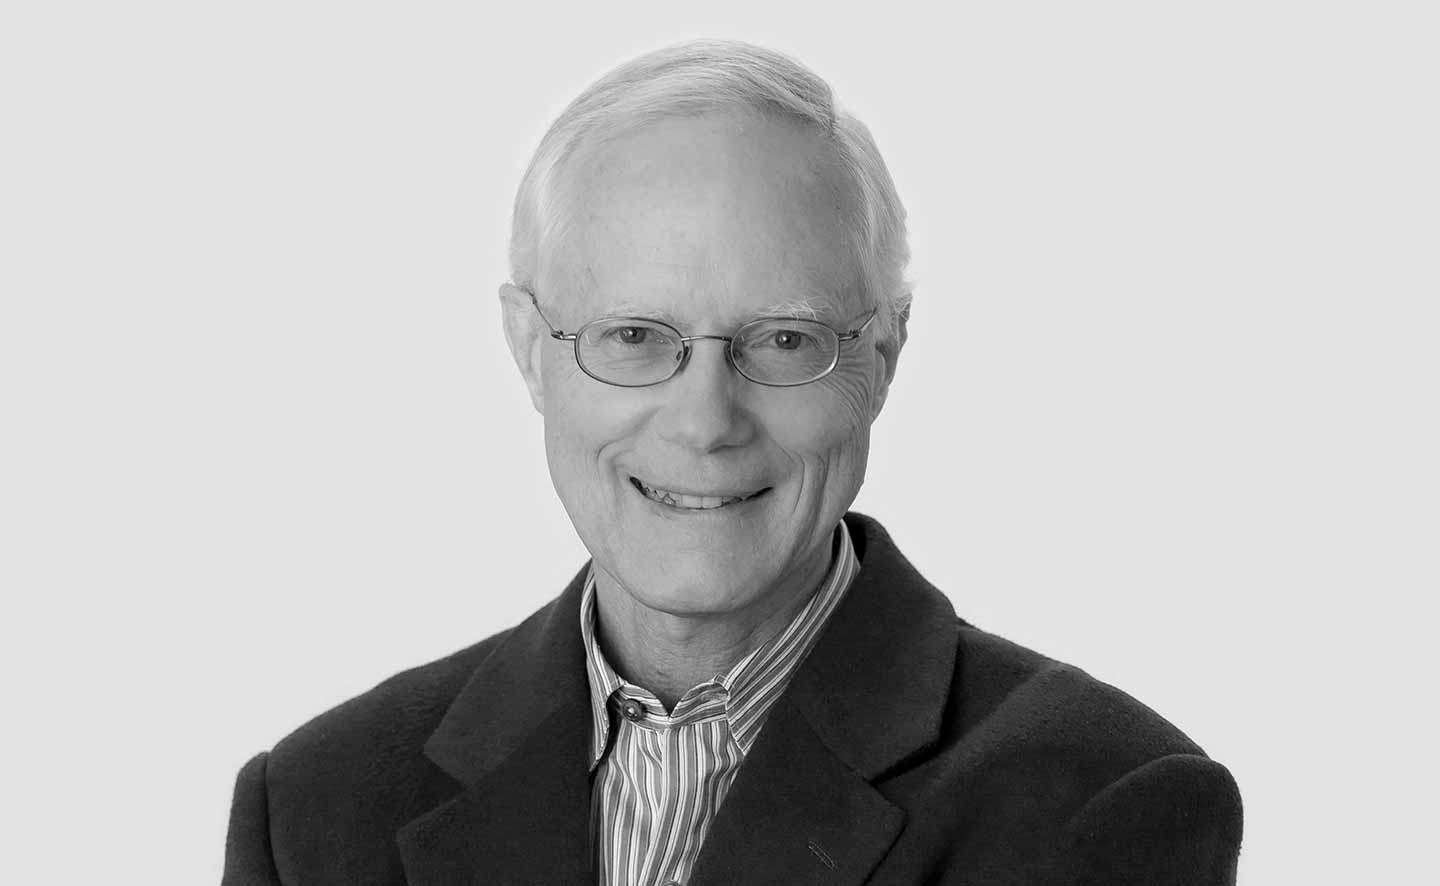 Founder: Scott Cook